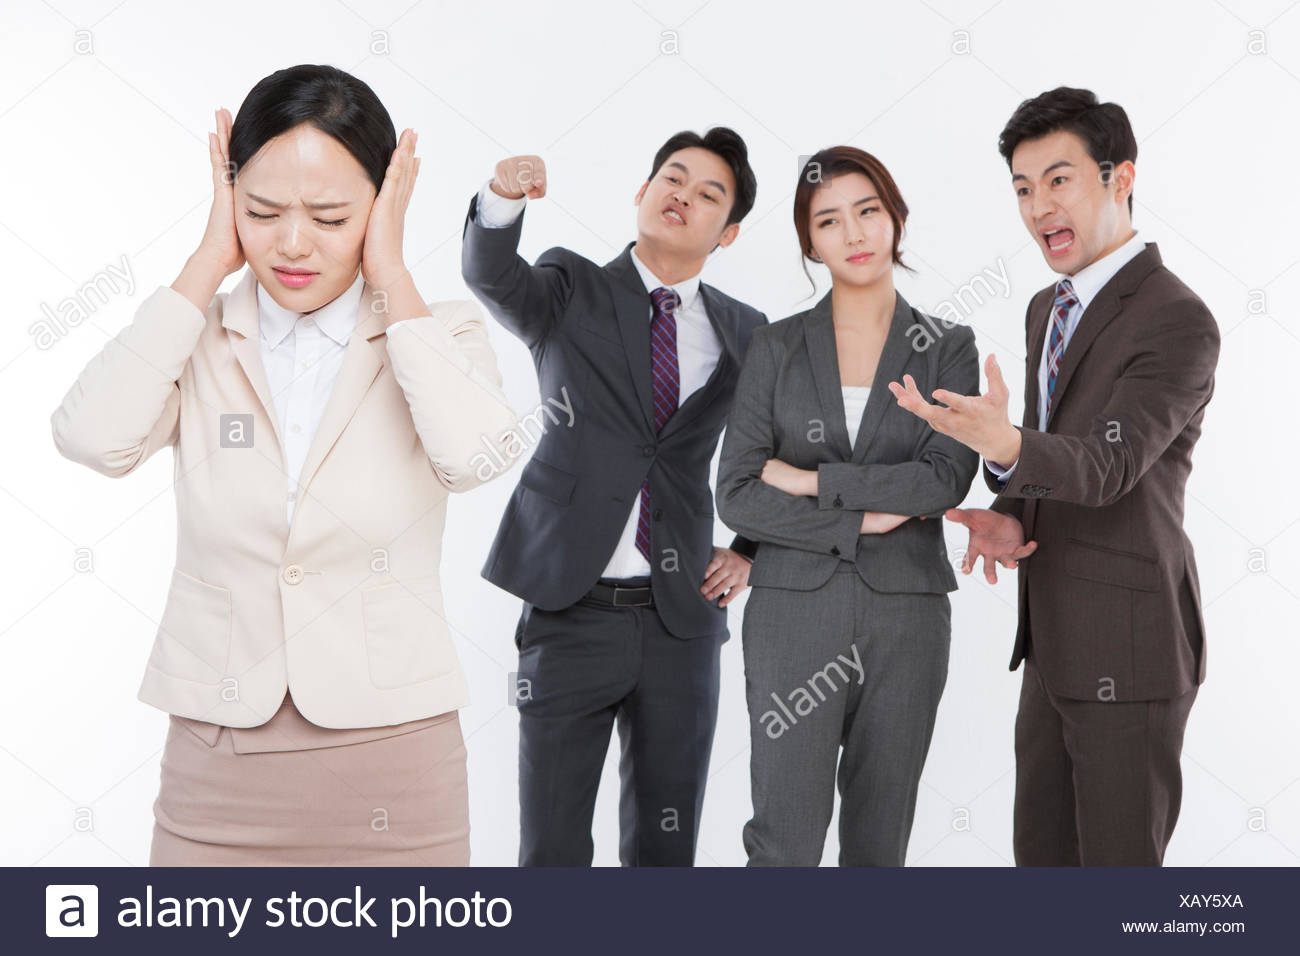 One stressful business woman excluded by other coworkers - Stock Image